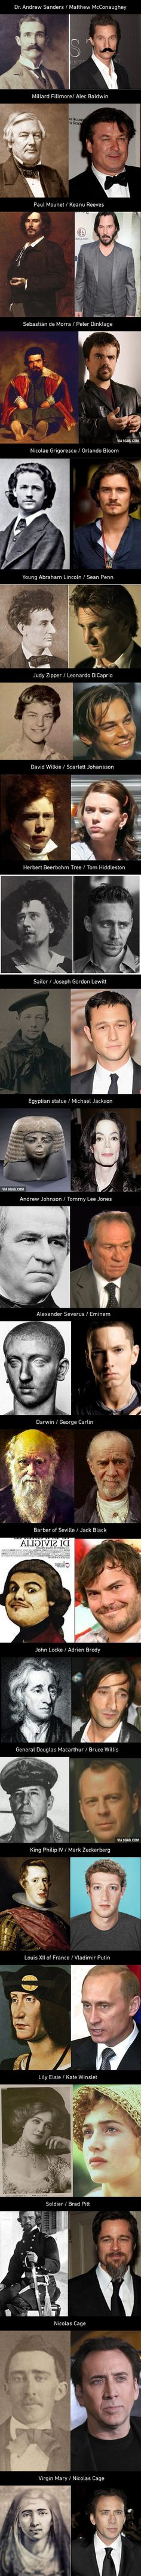 22 Celebrities And Their Historical Twins